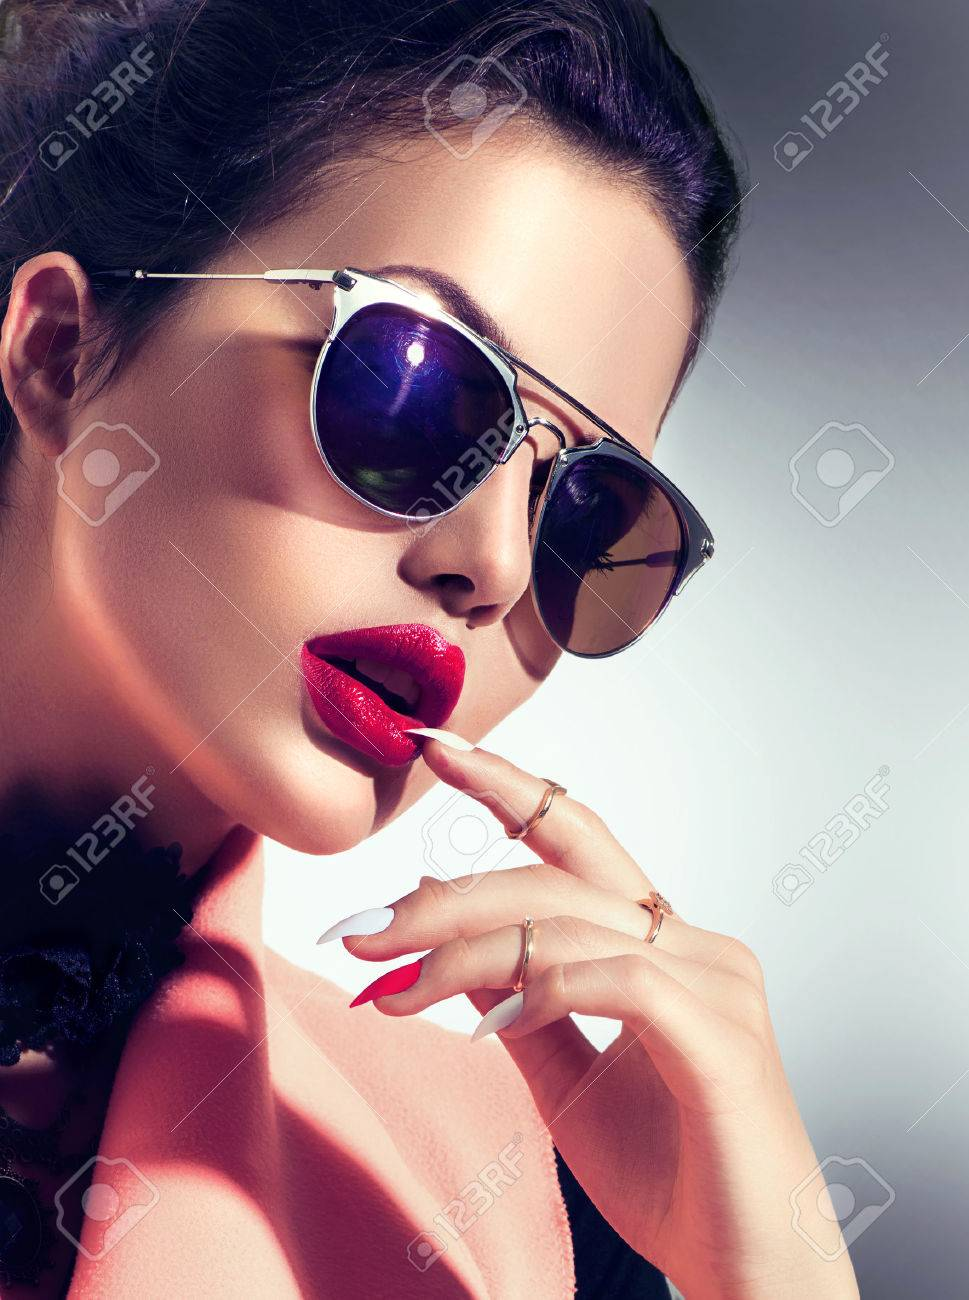 Sexy model girl wearing stylish sunglasses Banque d'images - 61789365